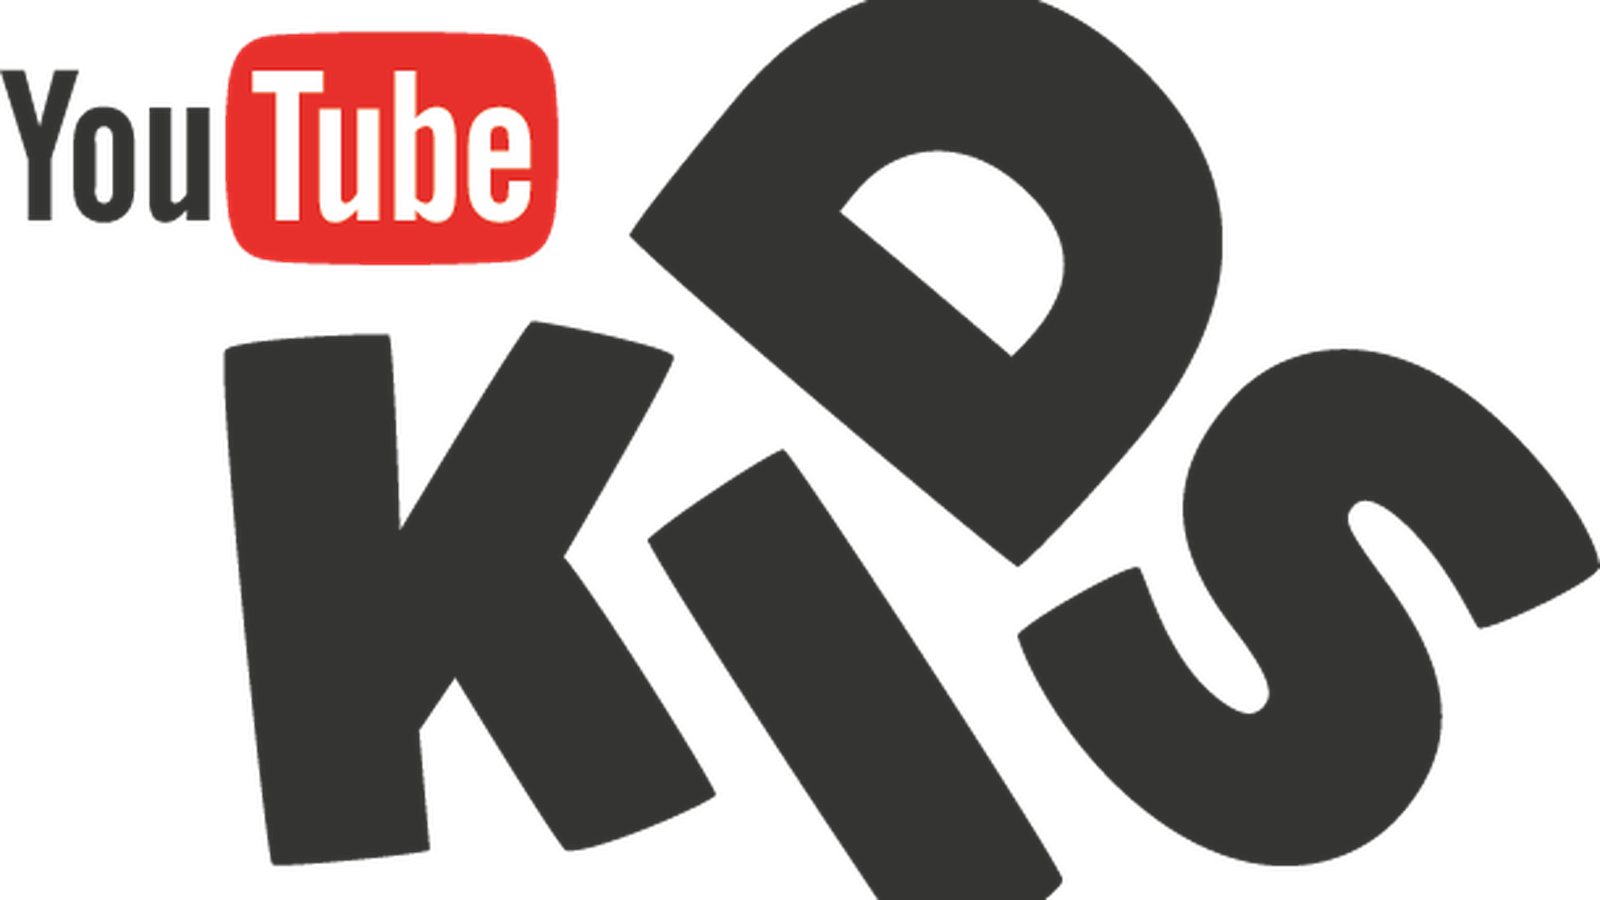 YouTube is launching an Android app for children - The Verge